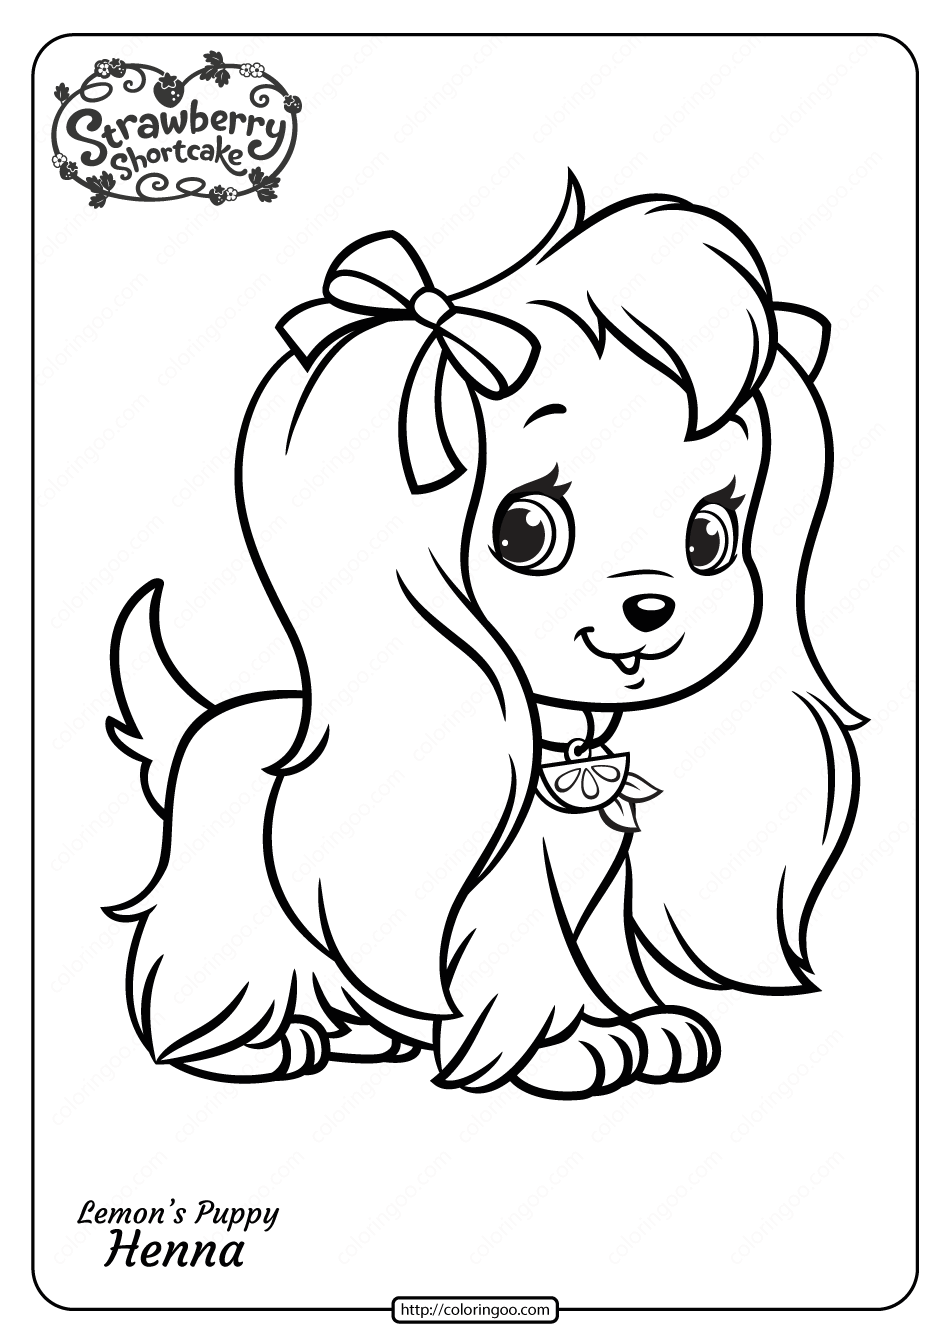 free downloadable coloring pages free downloadable coloring pages free coloring pages downloadable